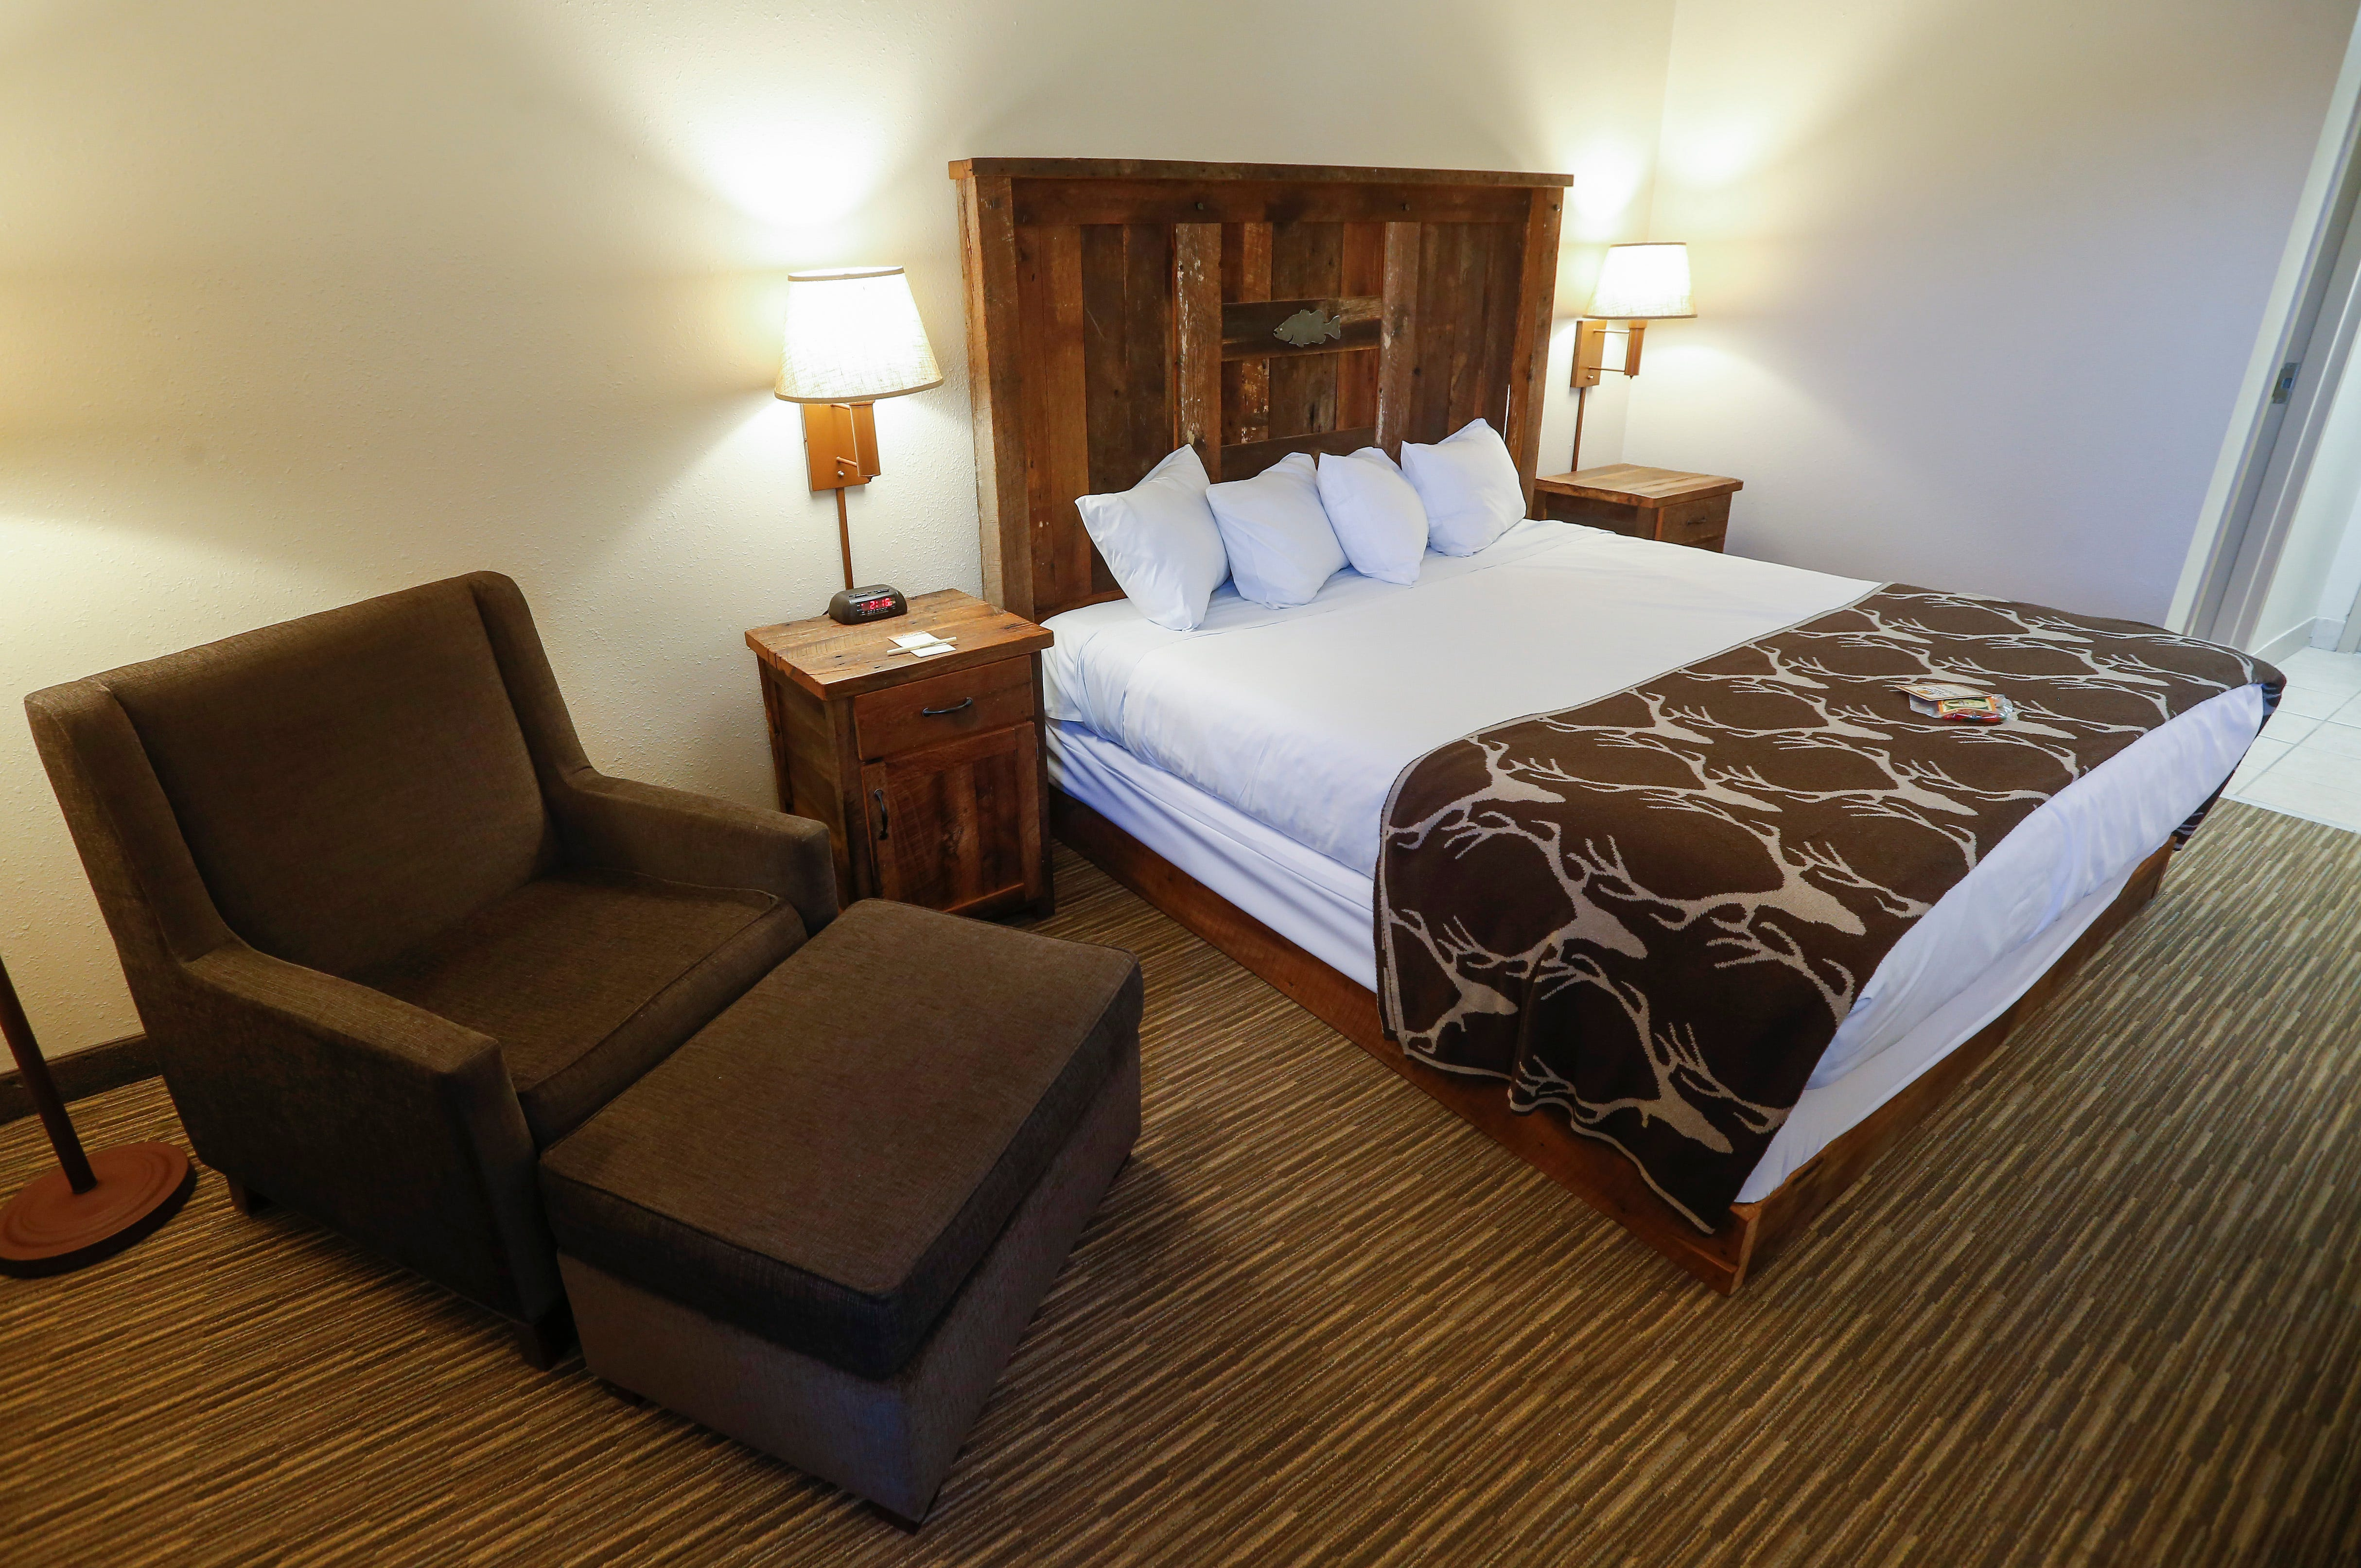 A View Inside A Room With A Single King Size Bed At